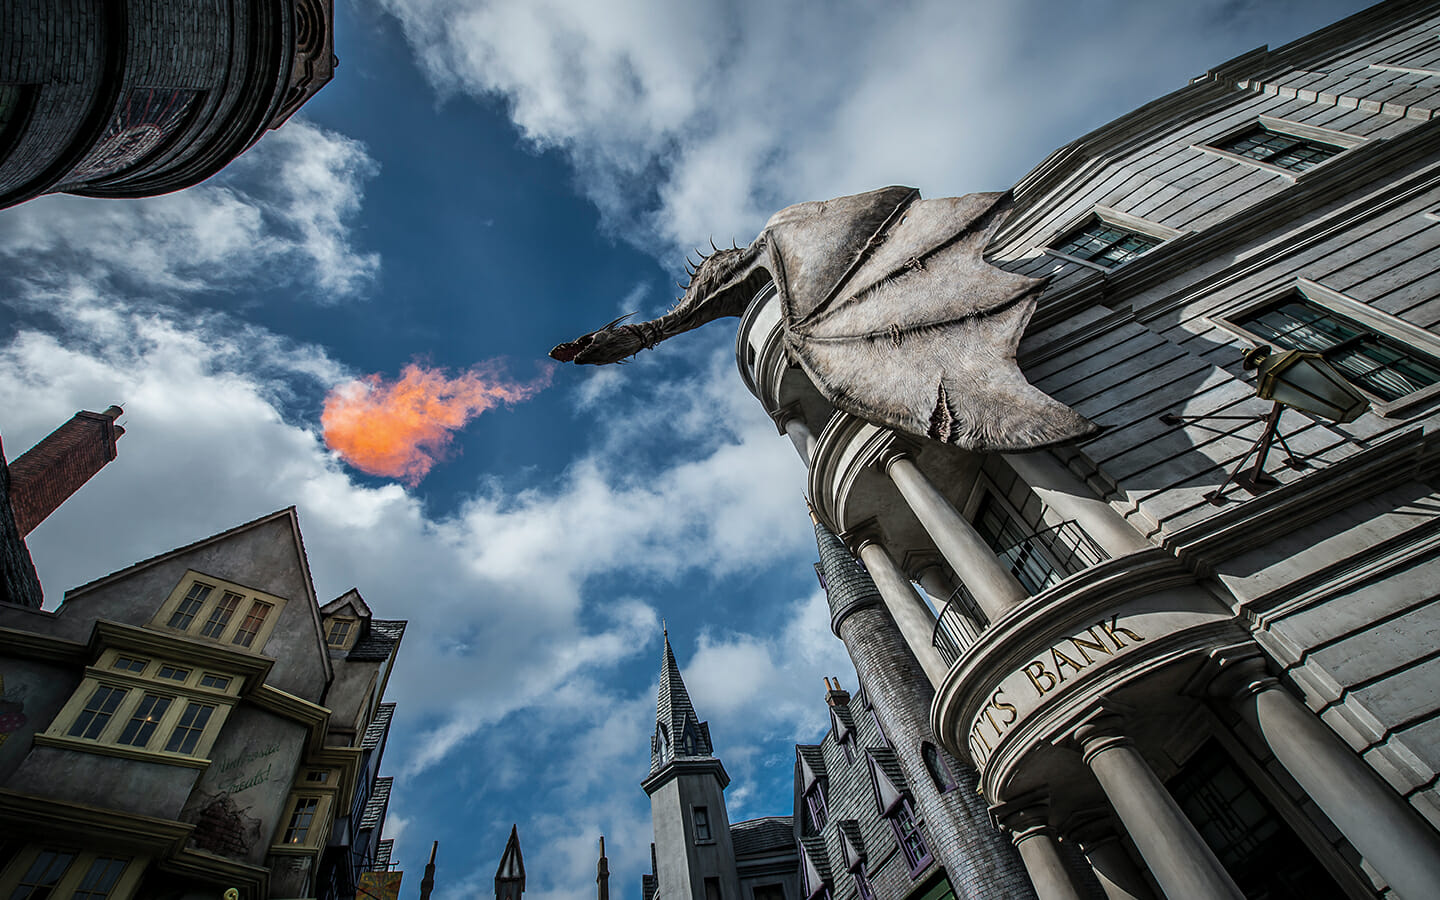 The Wizarding World of Harry Potter Universal Orlando Resort